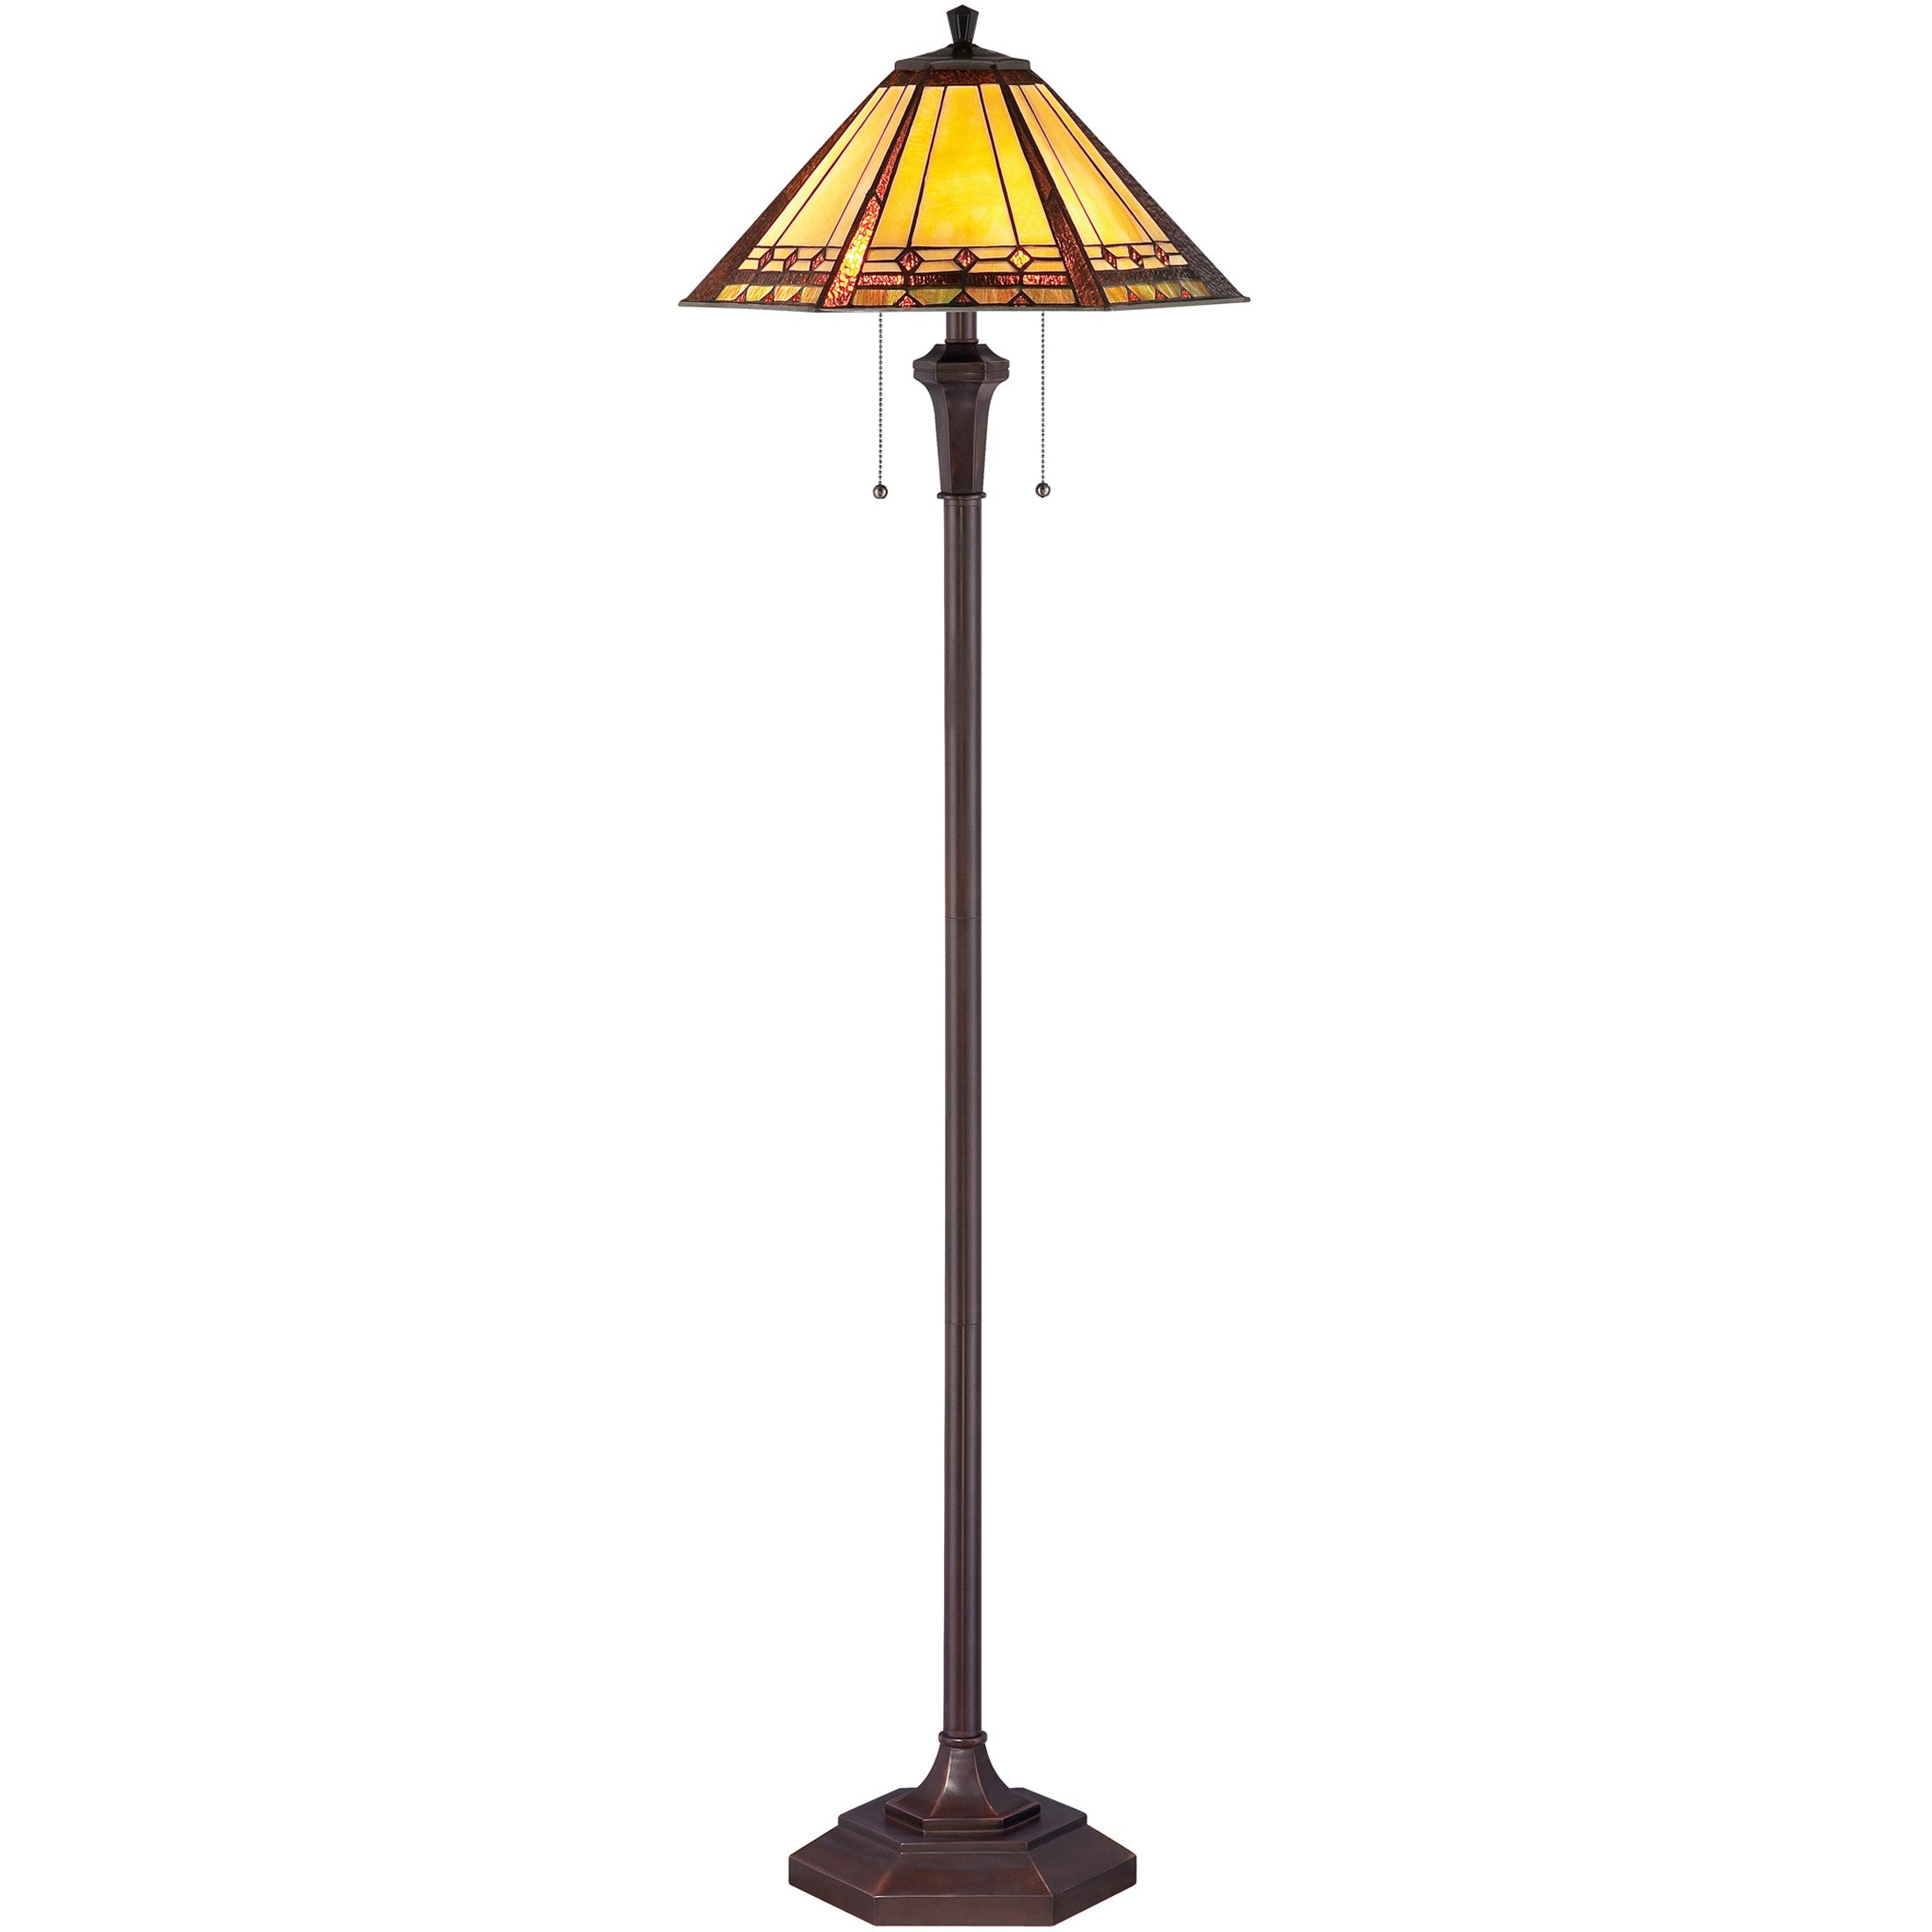 Arden Floor Lamp Quoizel Tf1135t Our Country Hearts